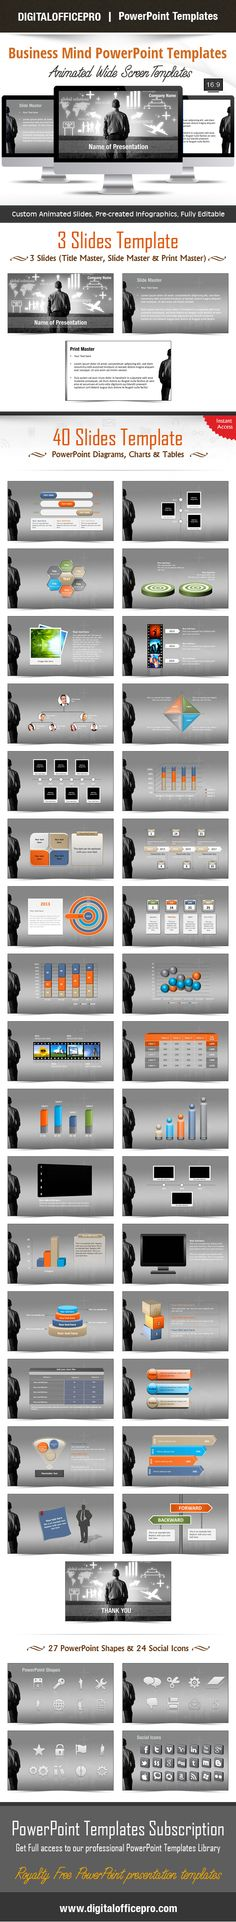 Impress and Engage your audience with Business Mind PowerPoint Template and Business Mind PowerPoint Backgrounds from DigitalOfficePro. Each template comes with a set of PowerPoint Diagrams, Charts & Shapes and are available for instant download.